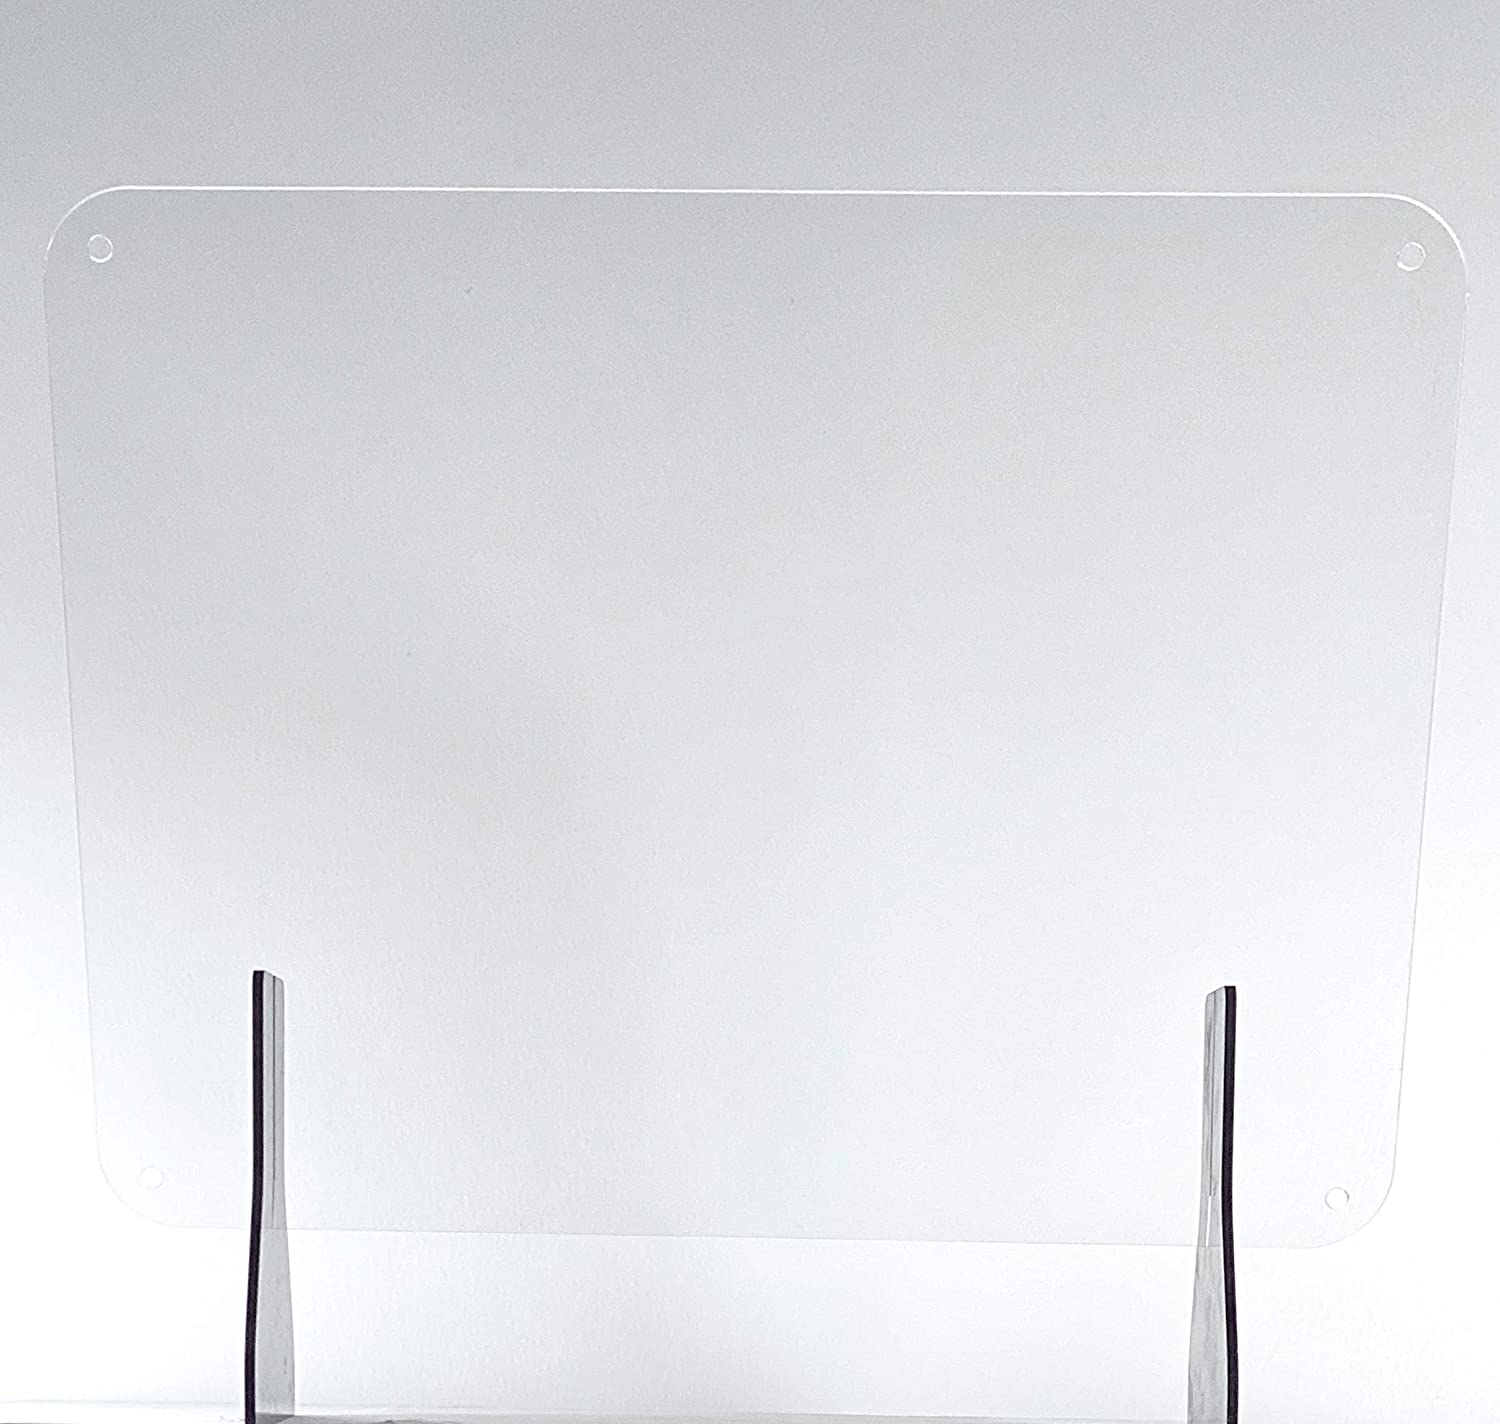 Clear Acrylic 24 x 18 Sneeze Guard 1/4 Plexiglass Cashier Clerk Protection Shield Desktop Counter or Hanging